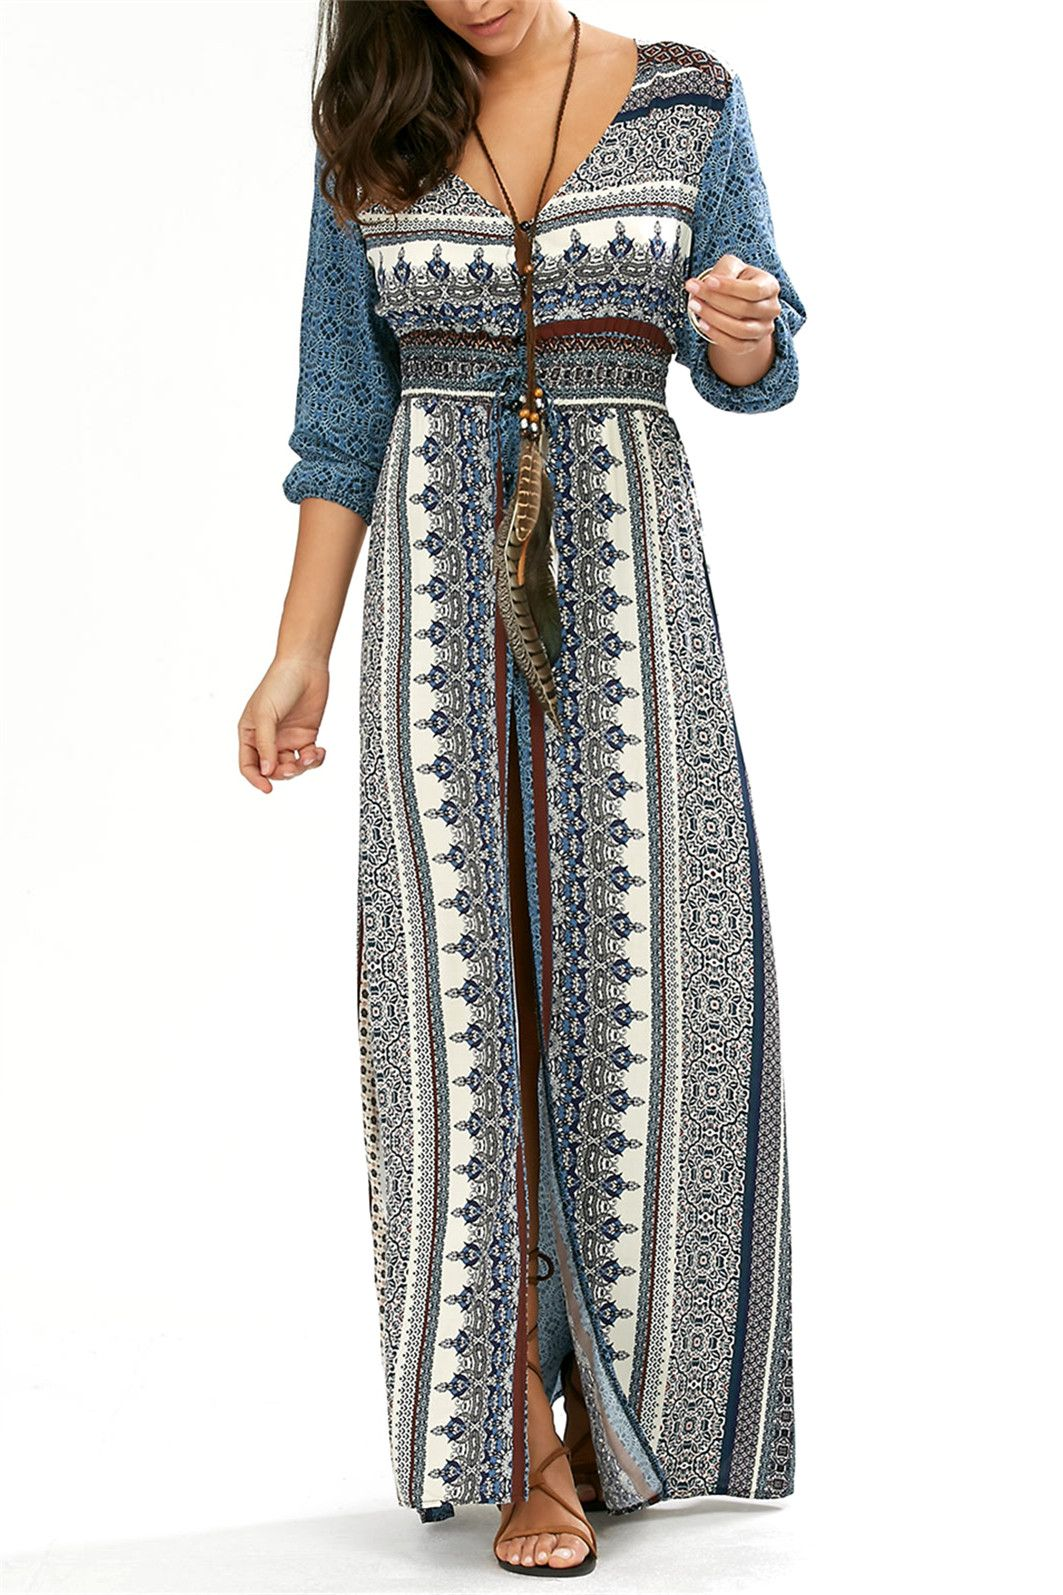 0f9dd1280da  18.89 Empire Waist Button Down Bohemian Maxi Dress - Blue https   tmblr.